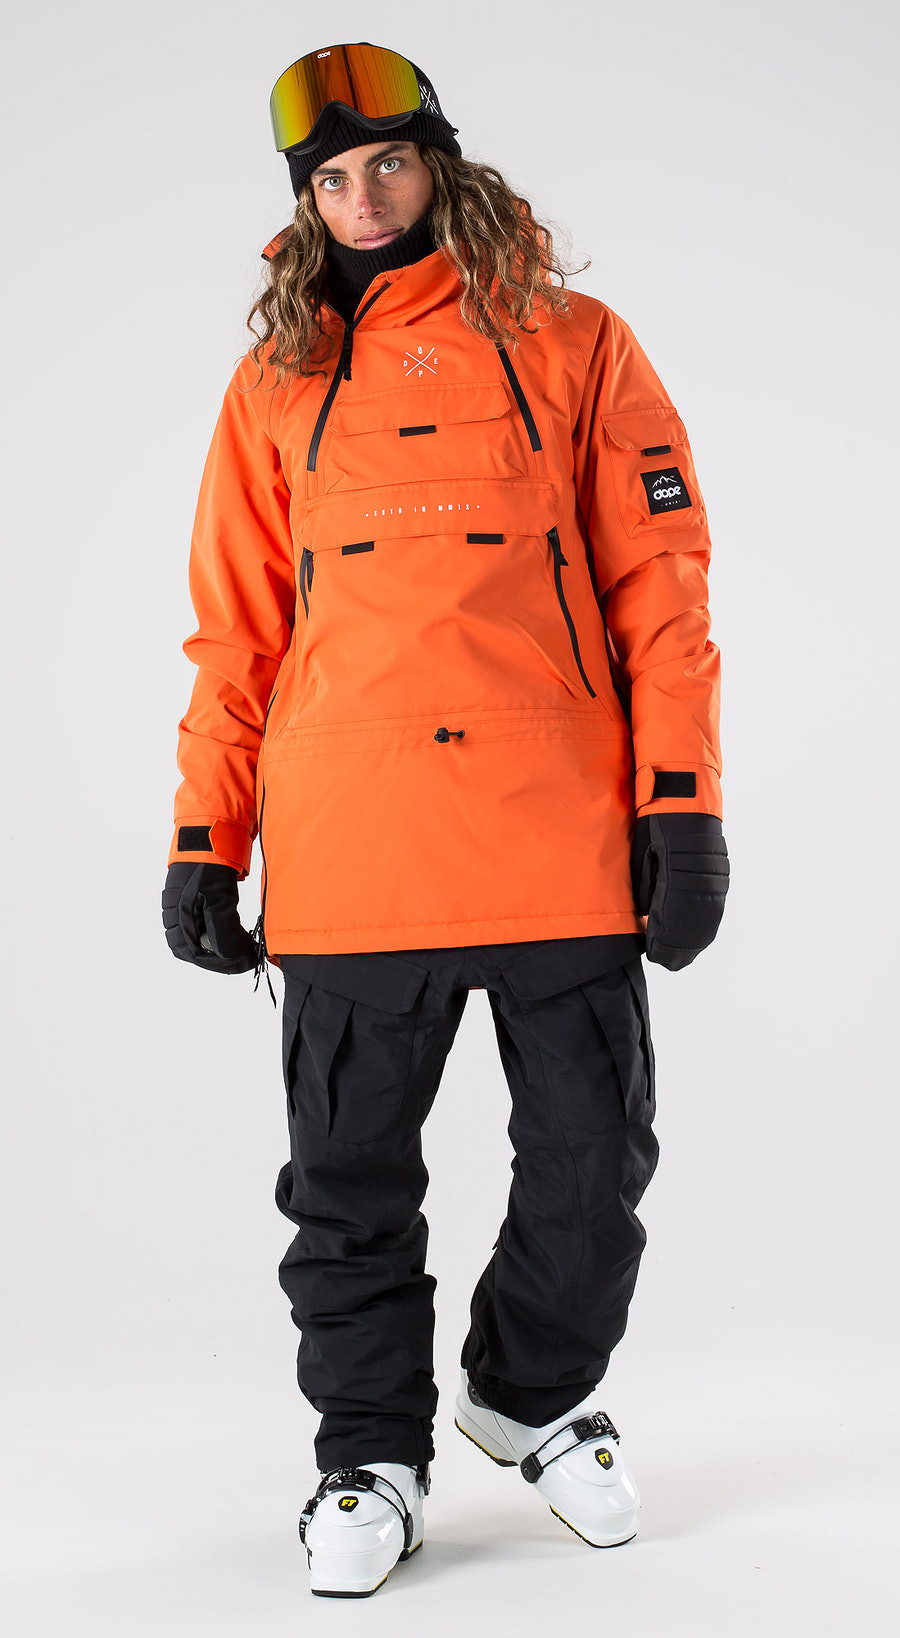 Dope Akin Orange Ski clothing Multi